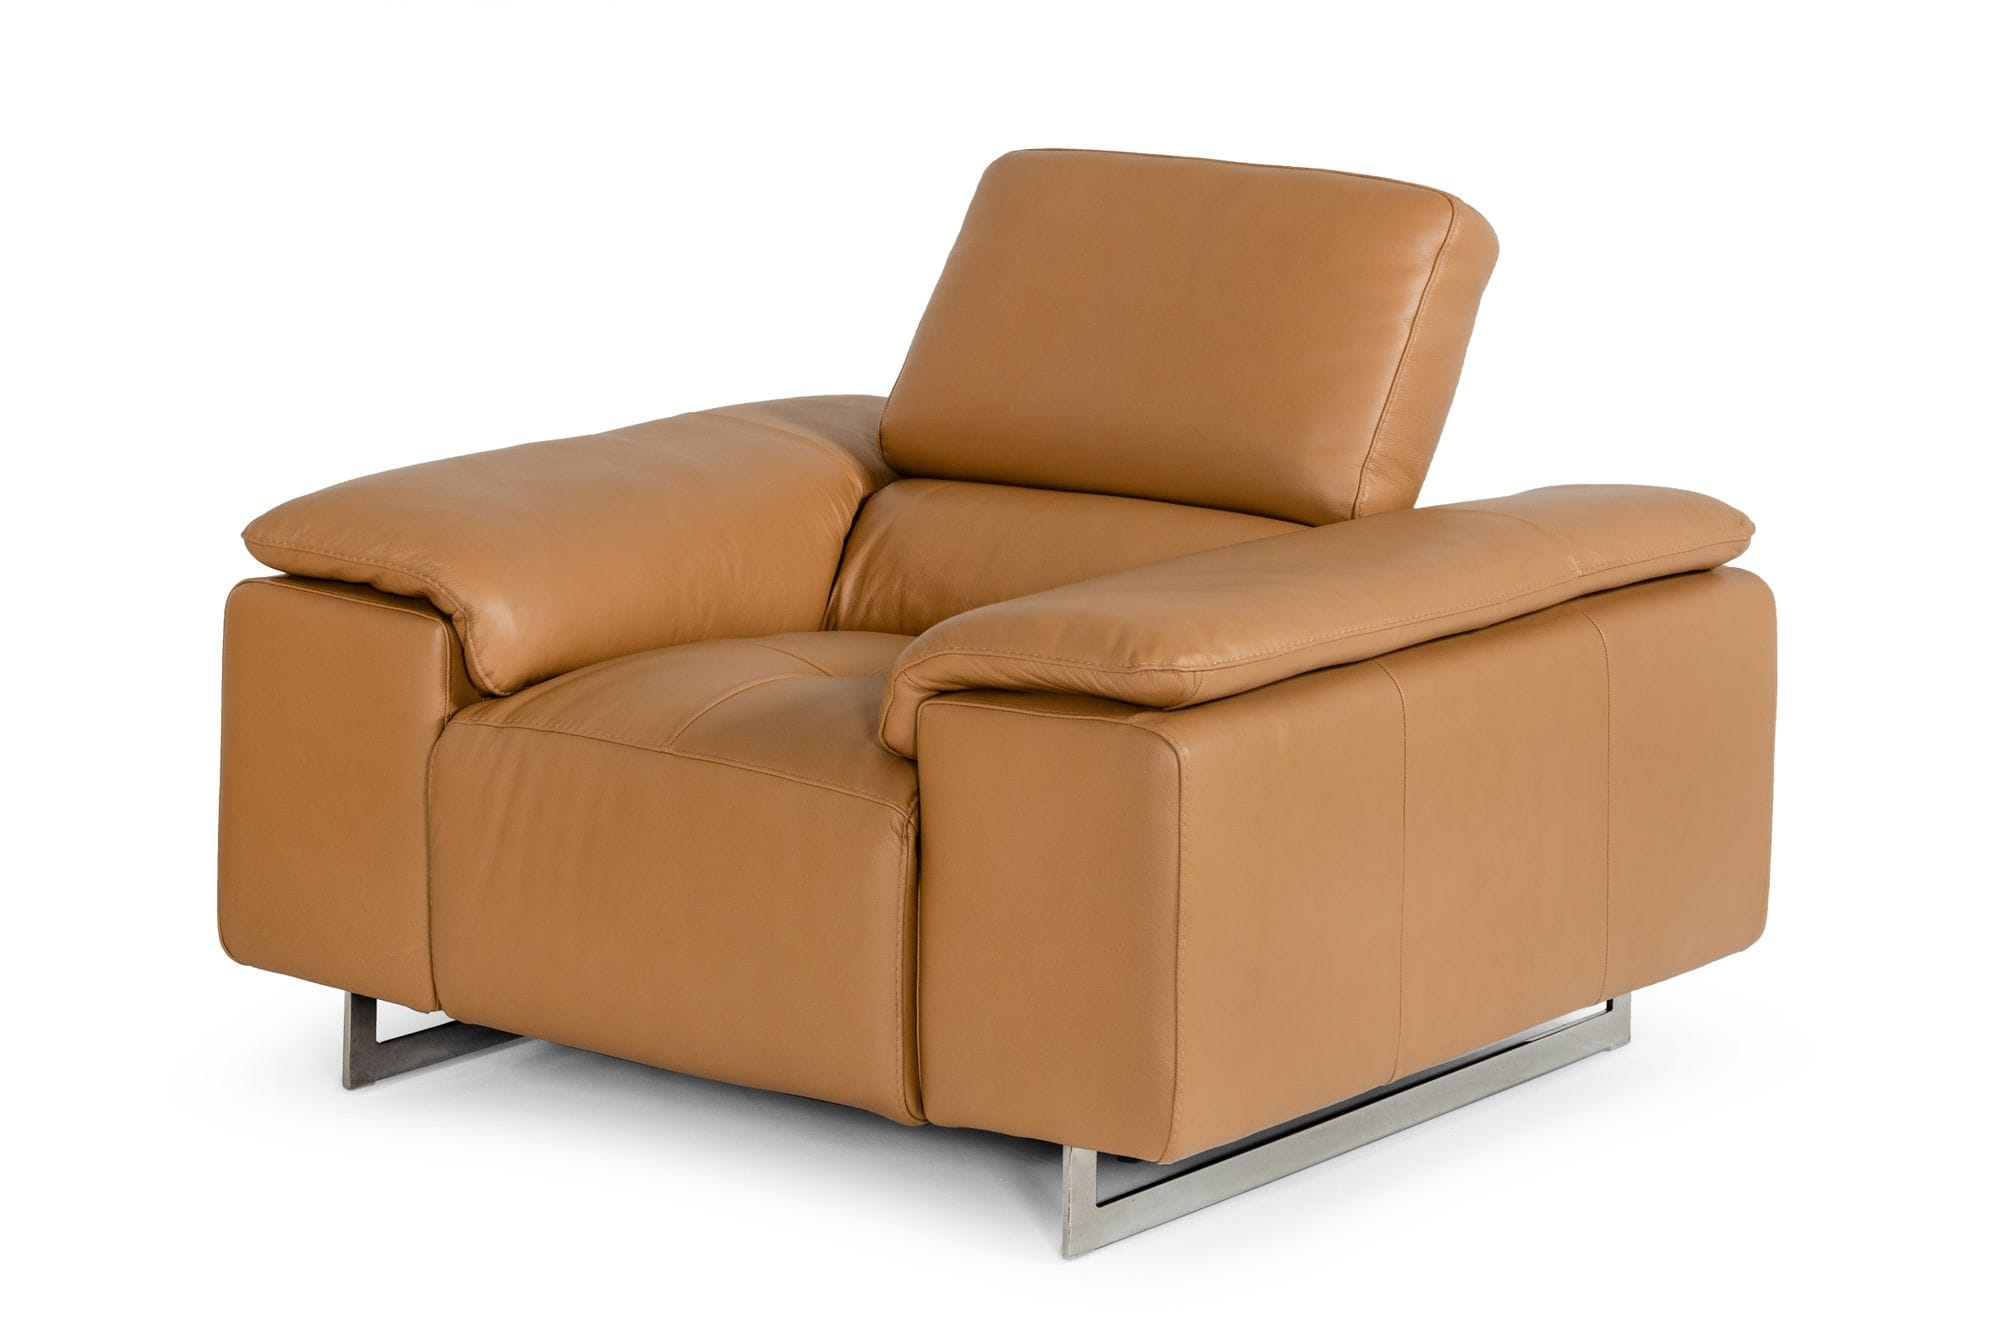 VIG Furniture Estro Salotti Blossom Modern Cognac Leather Recliner